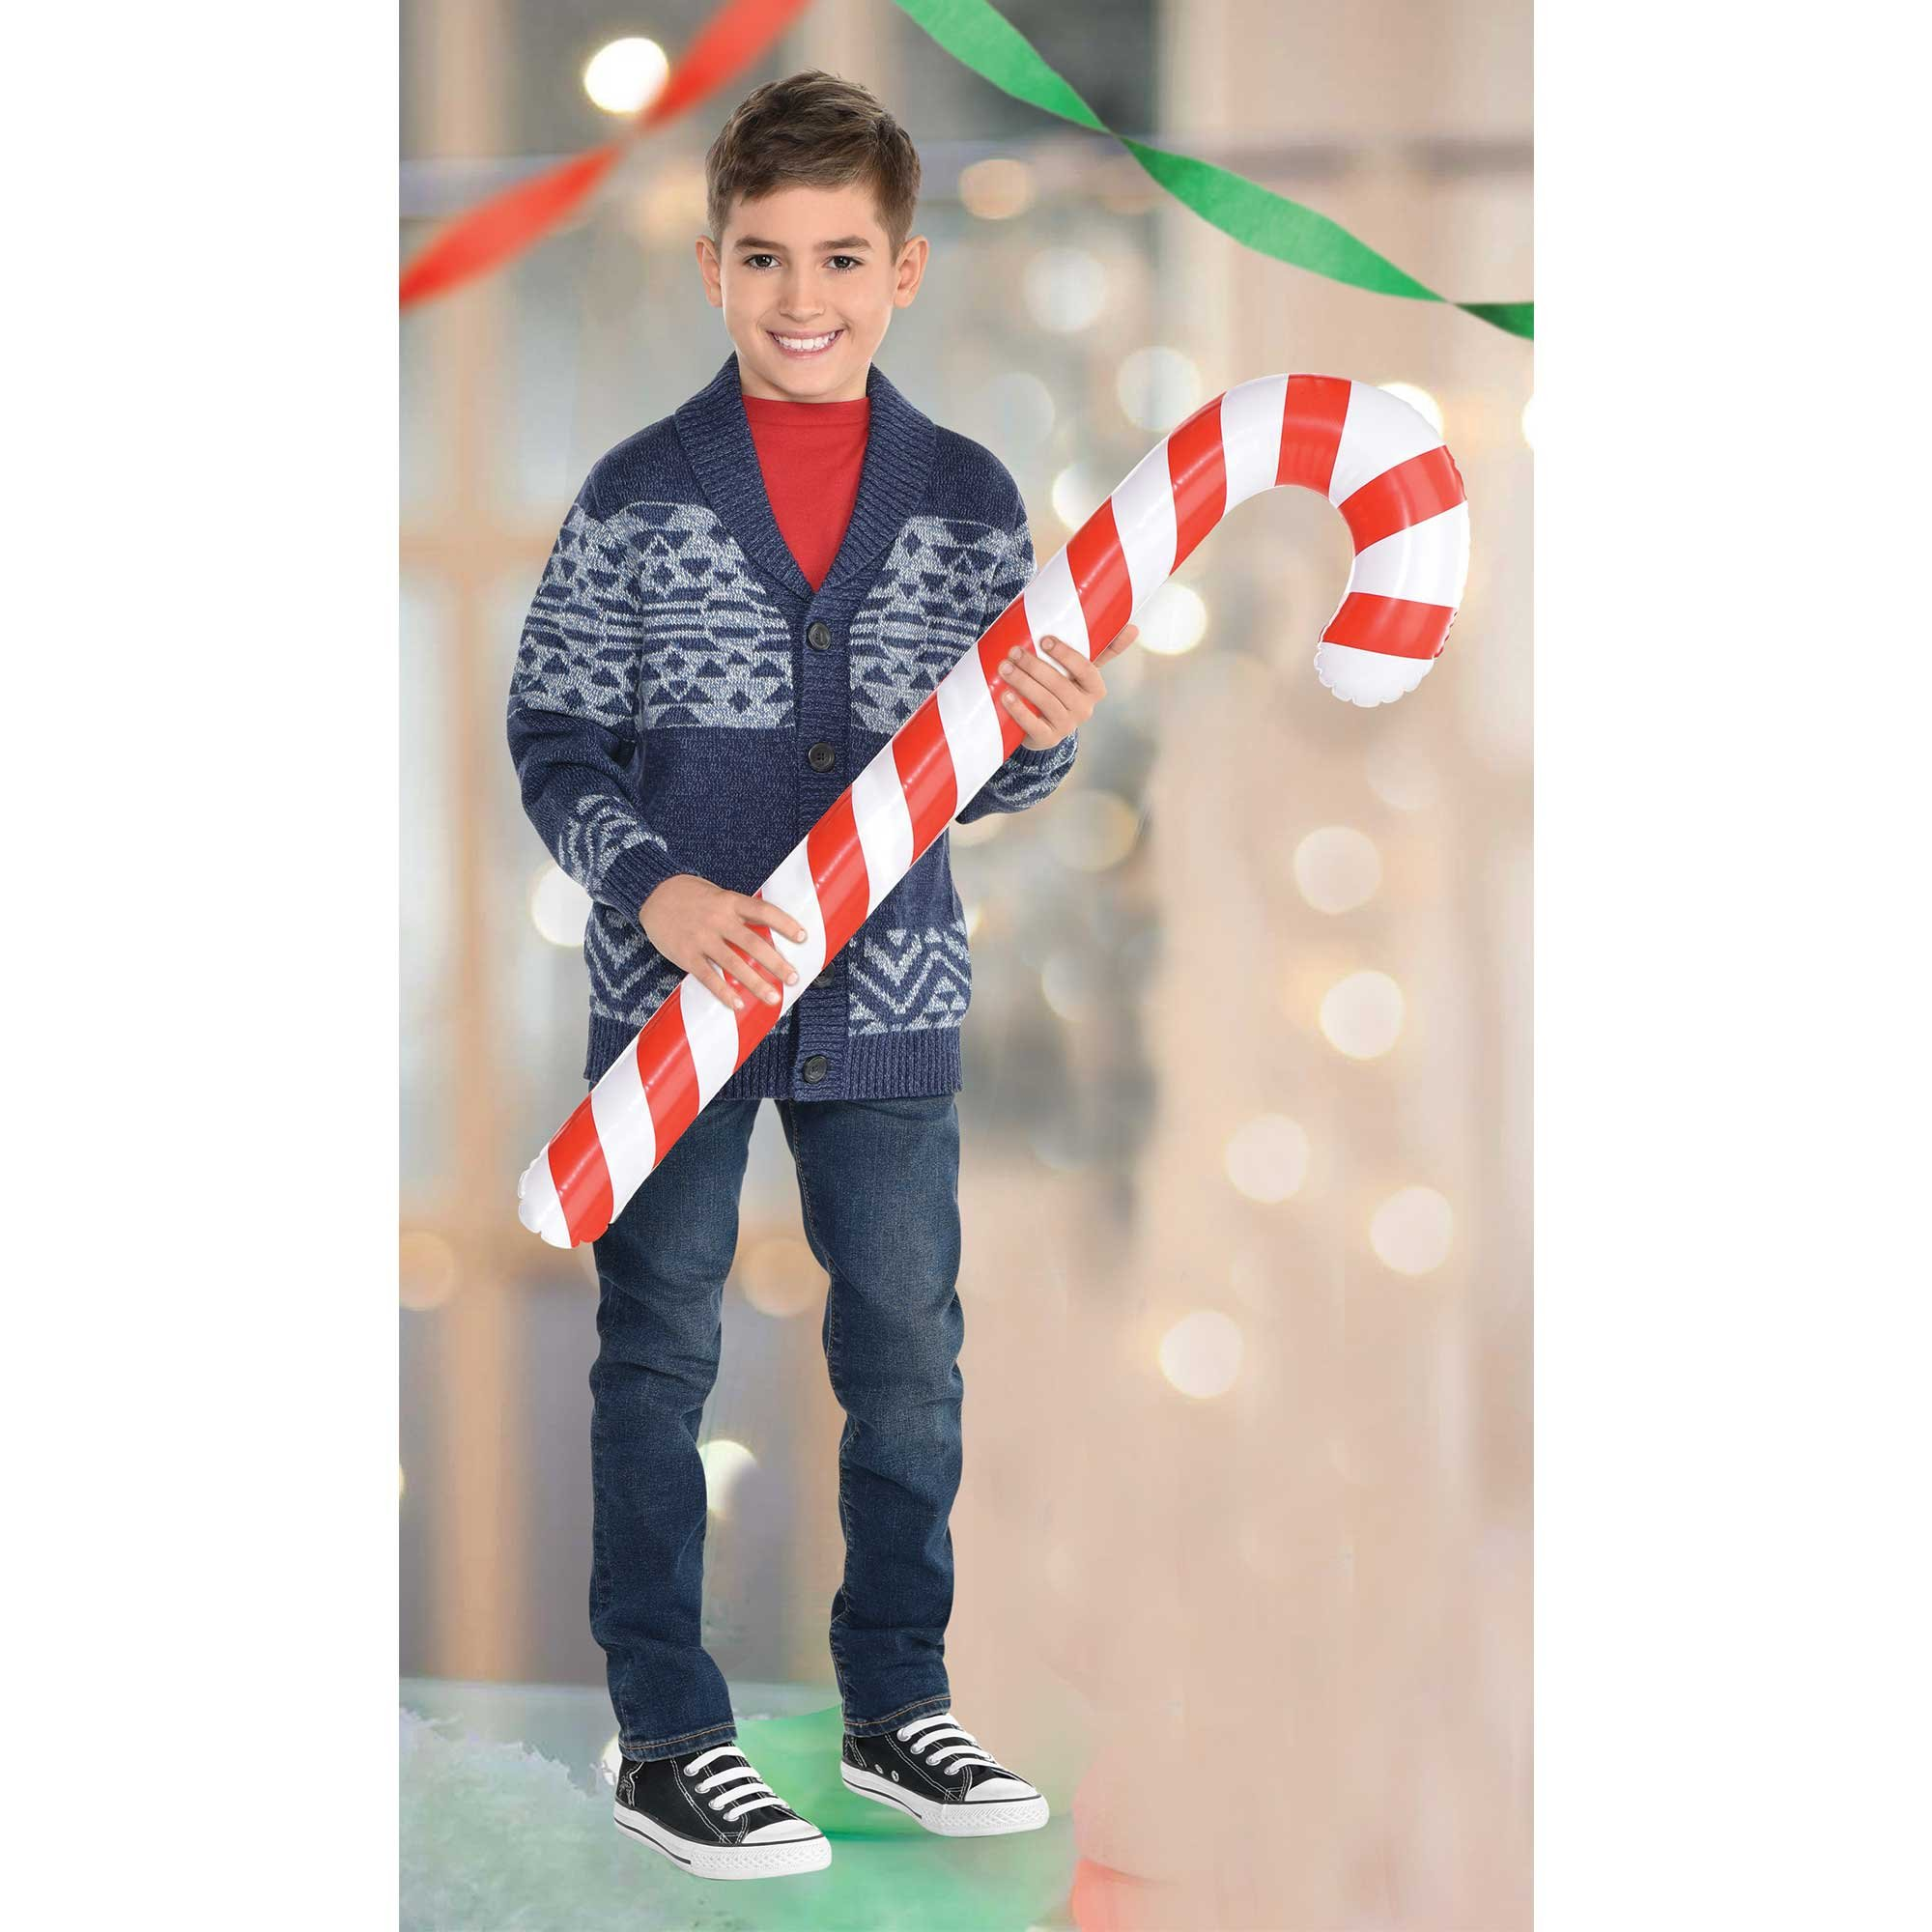 Christmas Candy Cane Inflatable Photo Prop or Decoration